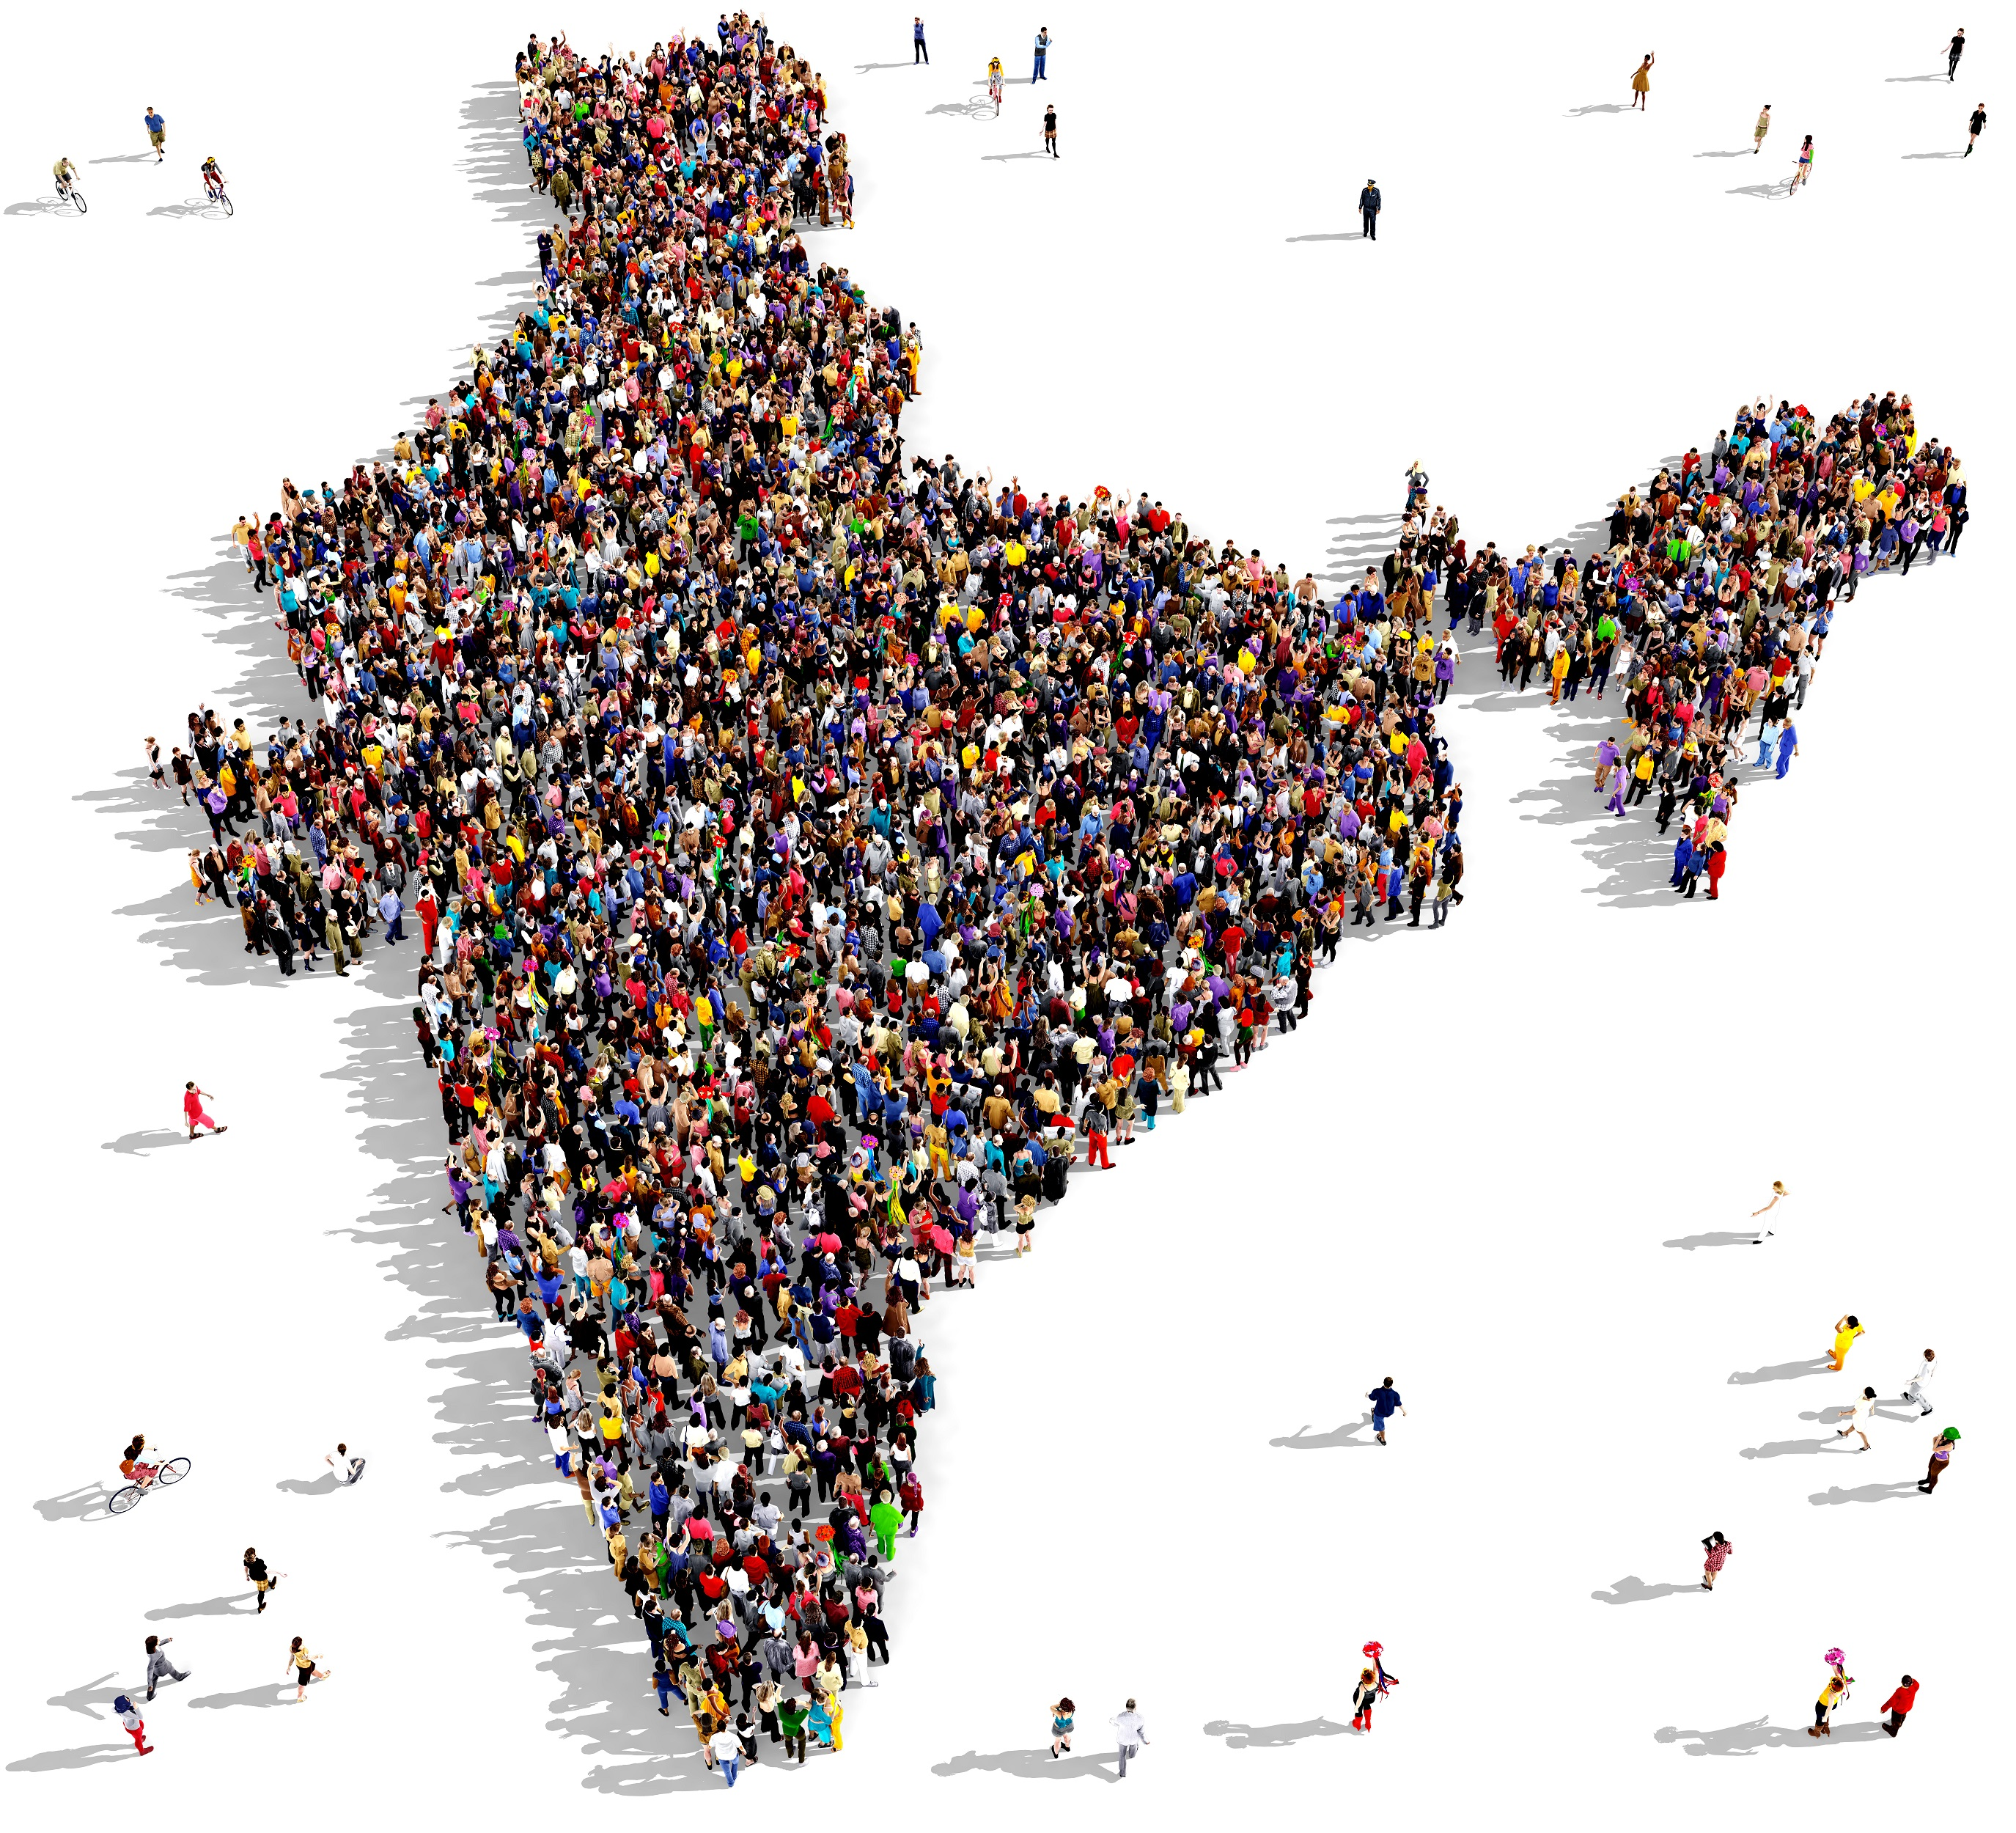 Map of India made with hundreds of people